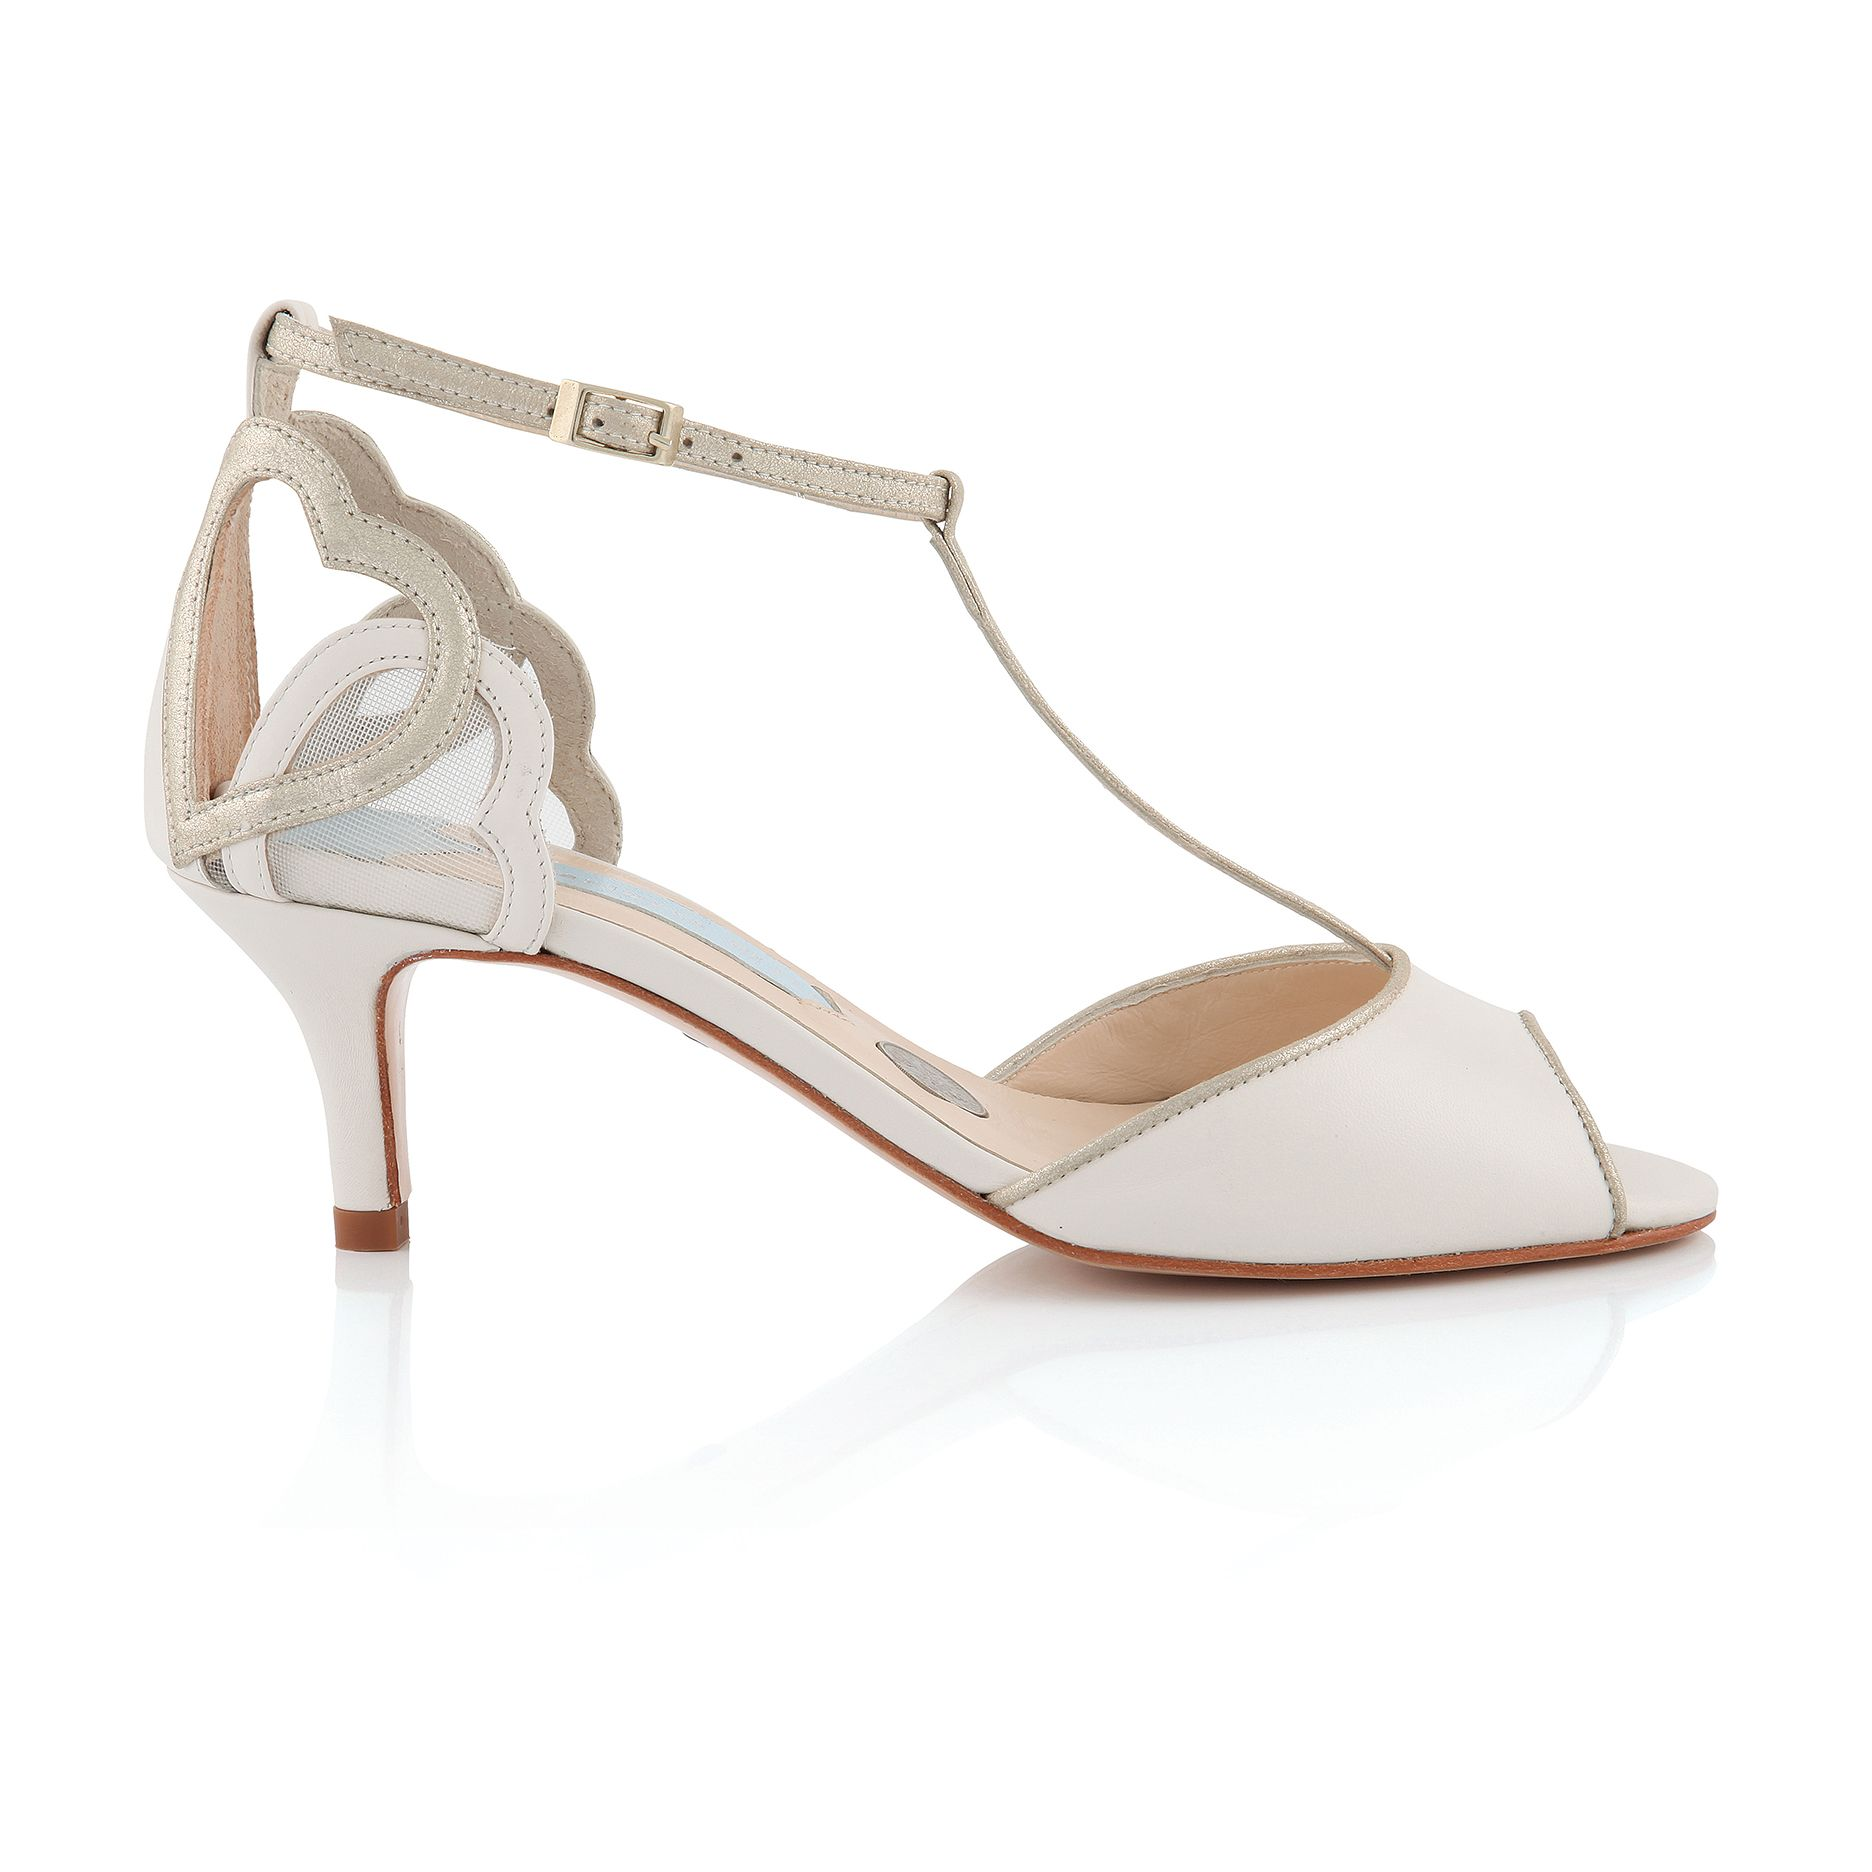 Amelia T Bar Vintage Inspired Wedding Shoe Charlotte Mills Bridal Ivory Leather Pale Gold Champagne Hearts Sixpence In Her